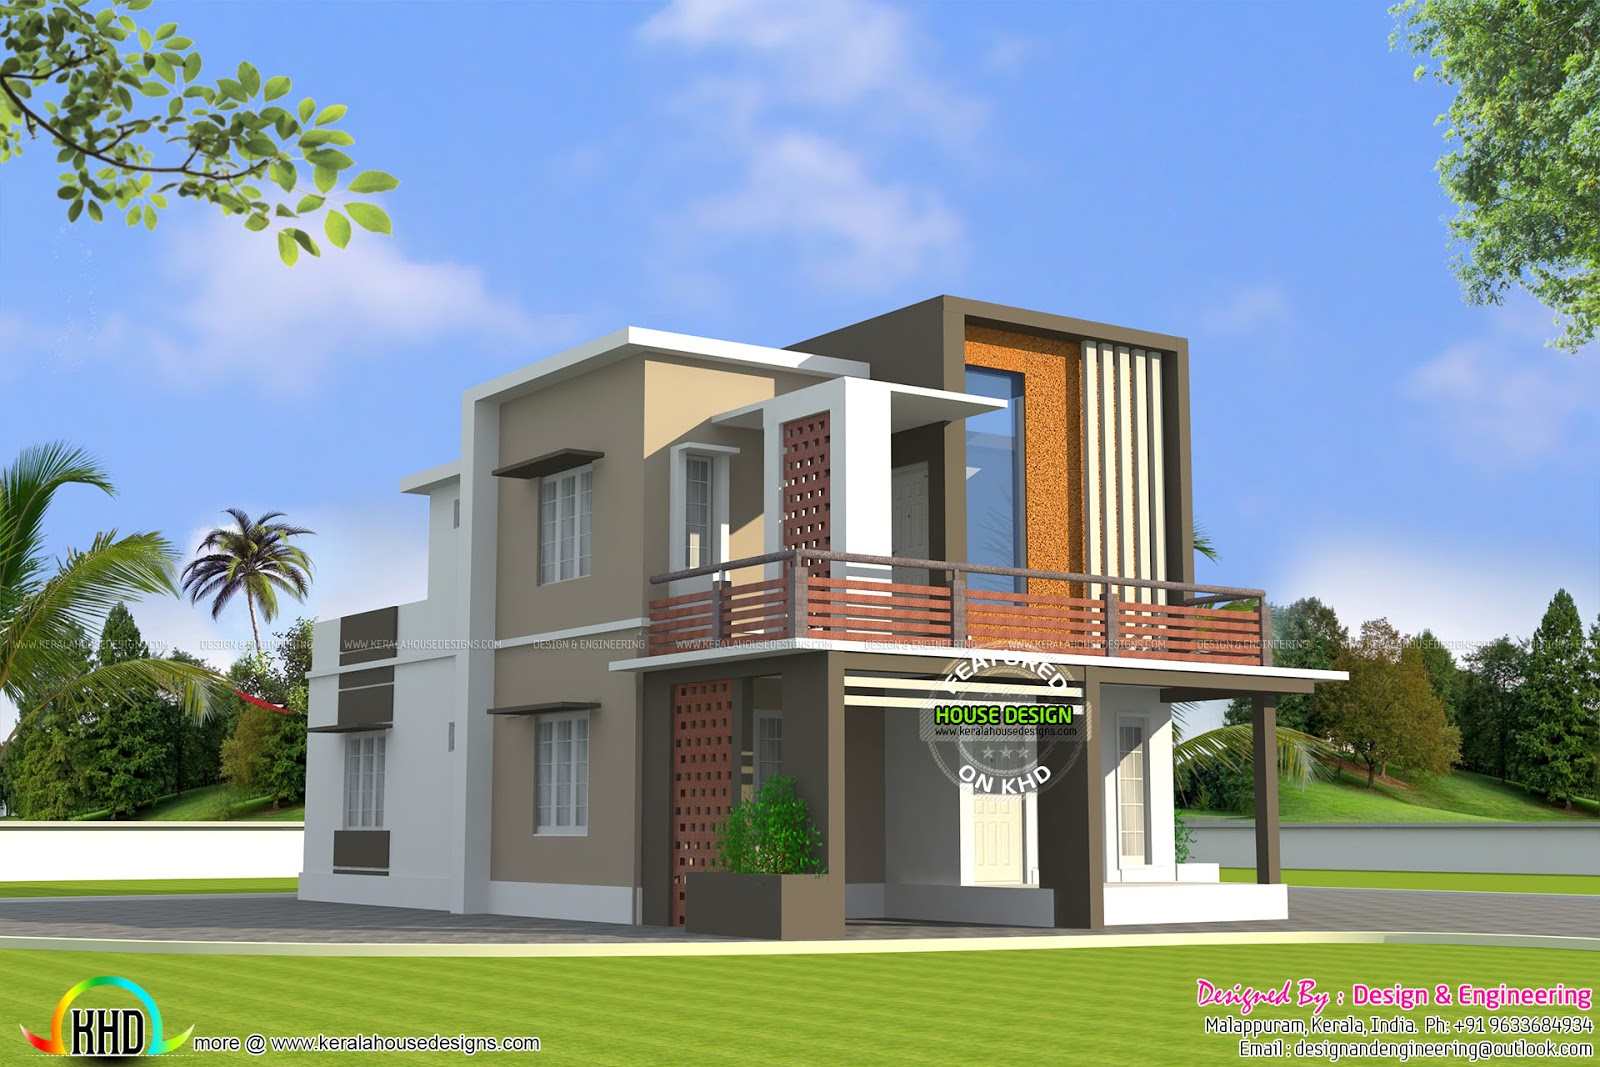 Low cost double floor home plan kerala home design and for Low cost house plans in kerala with images